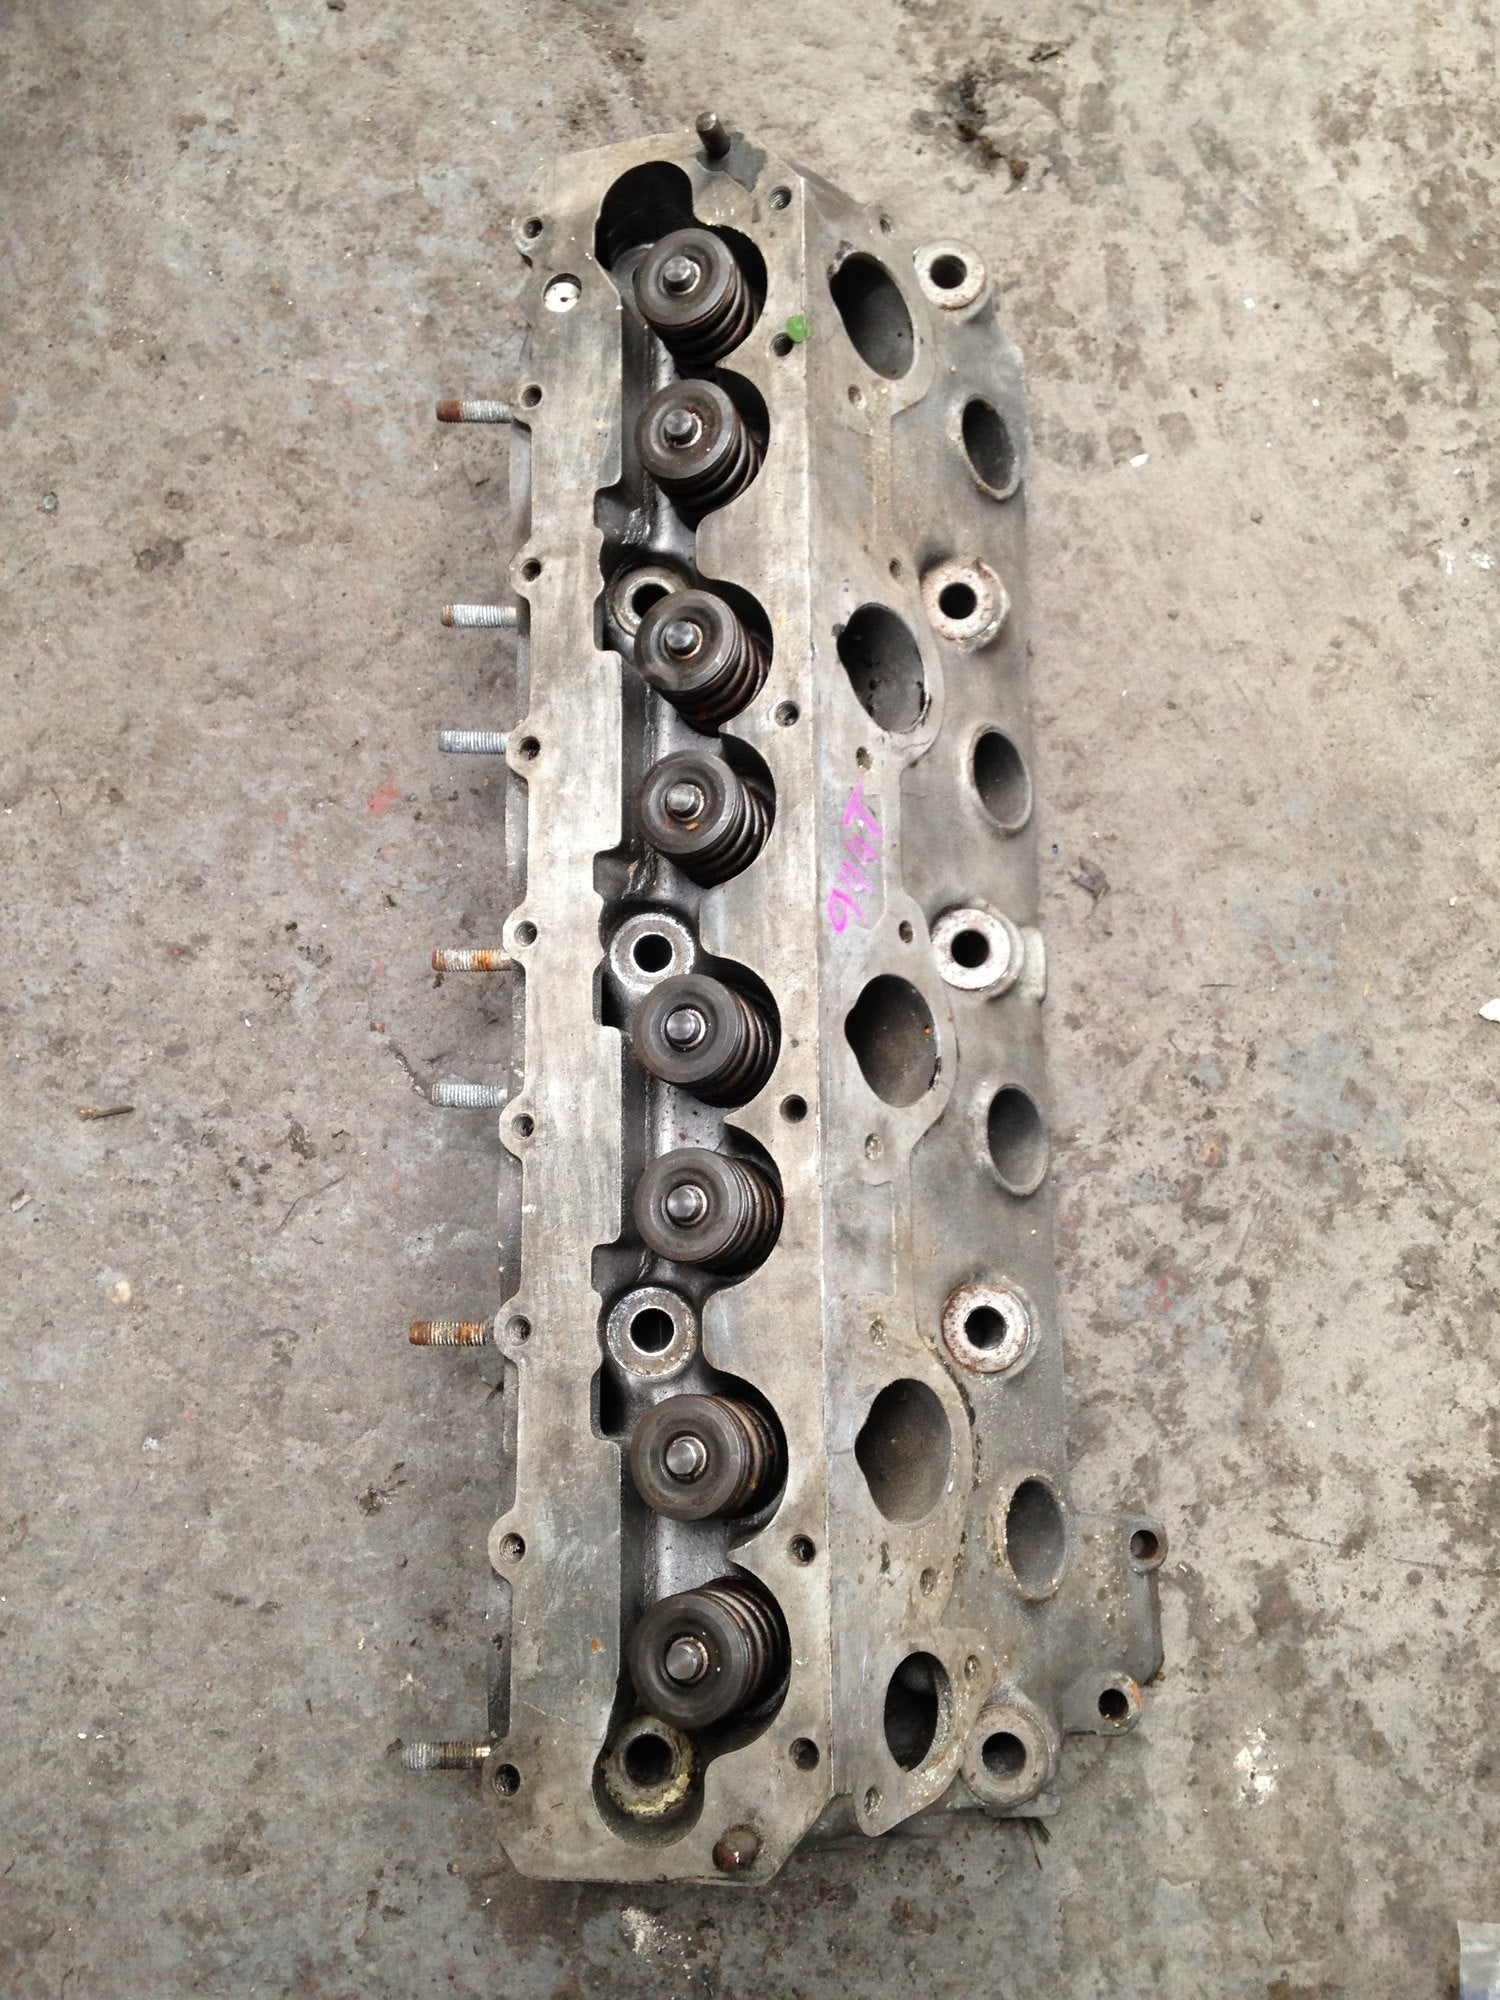 Porsche 944 TURBO cylinder head 951.104.303.1 R - Woolies Workshop - Porsche 924 944 spares